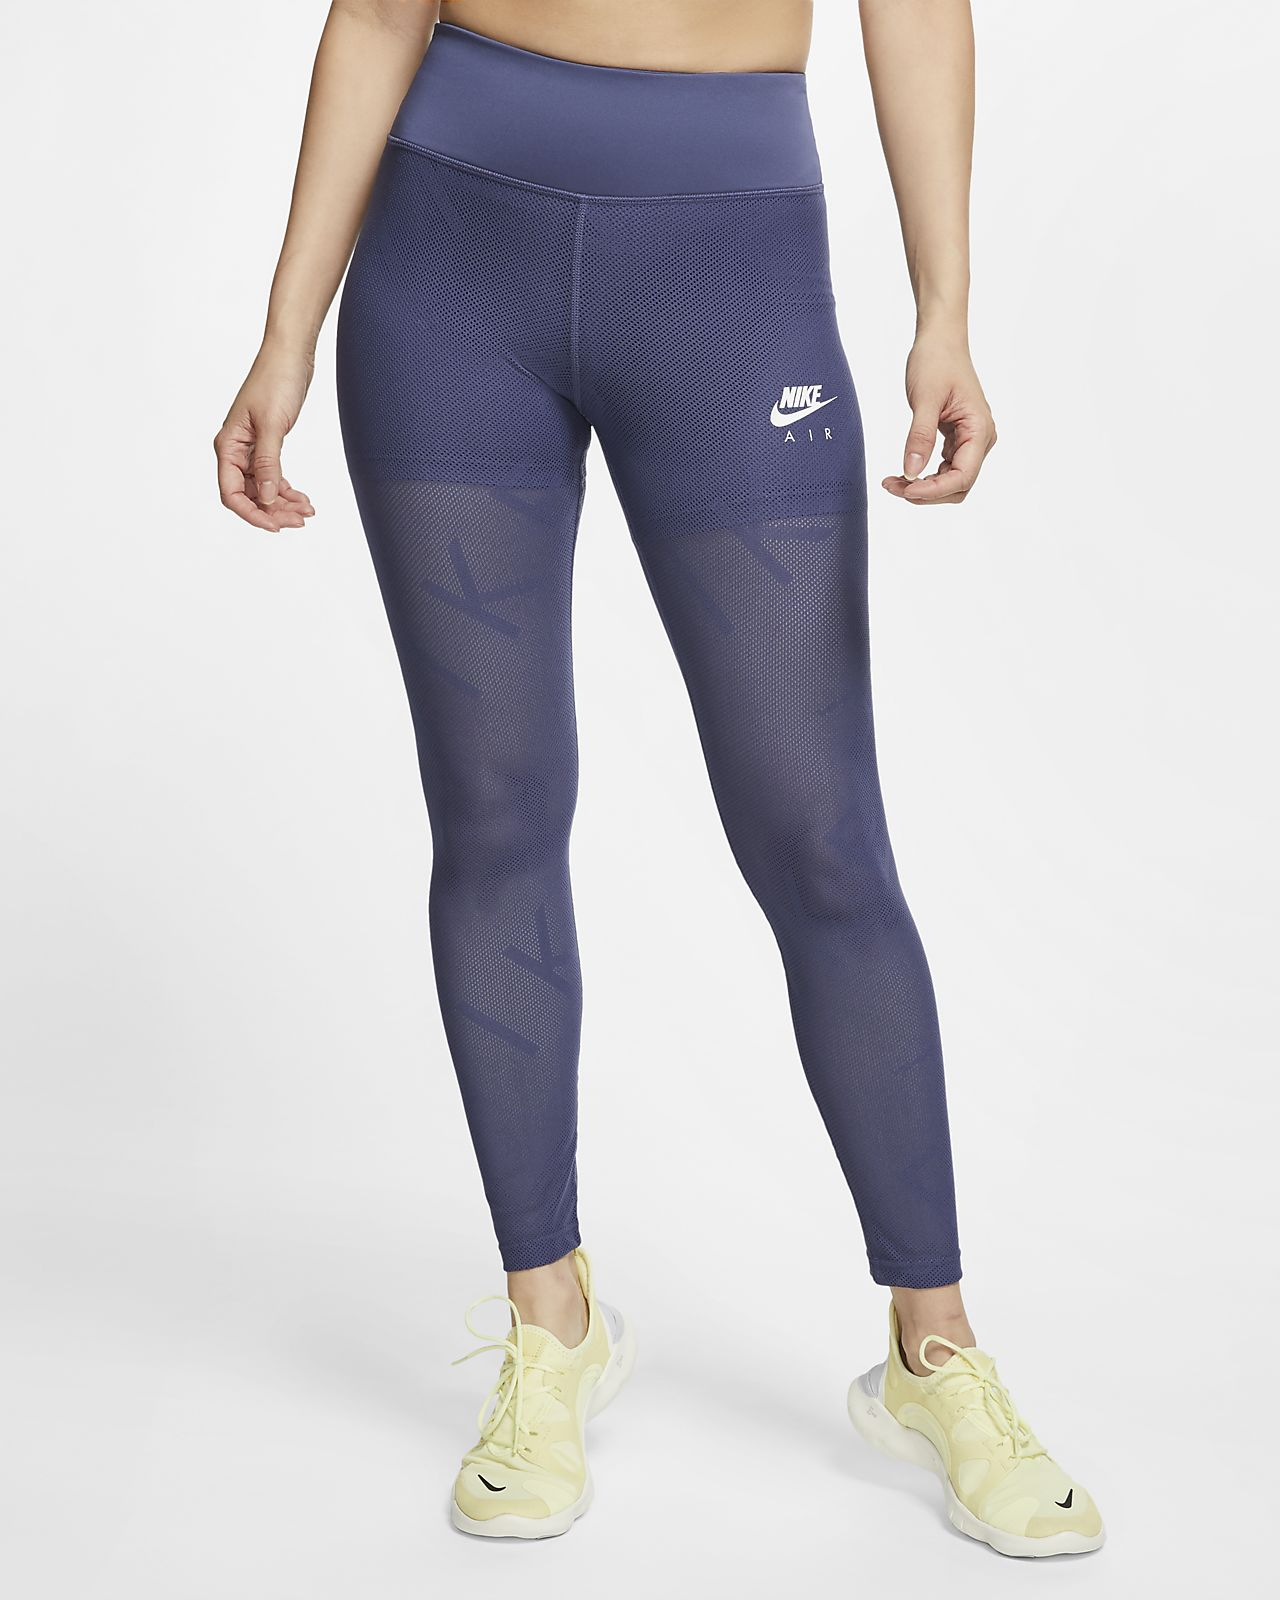 Nike Air Women's 7/8 Mesh Running Leggings